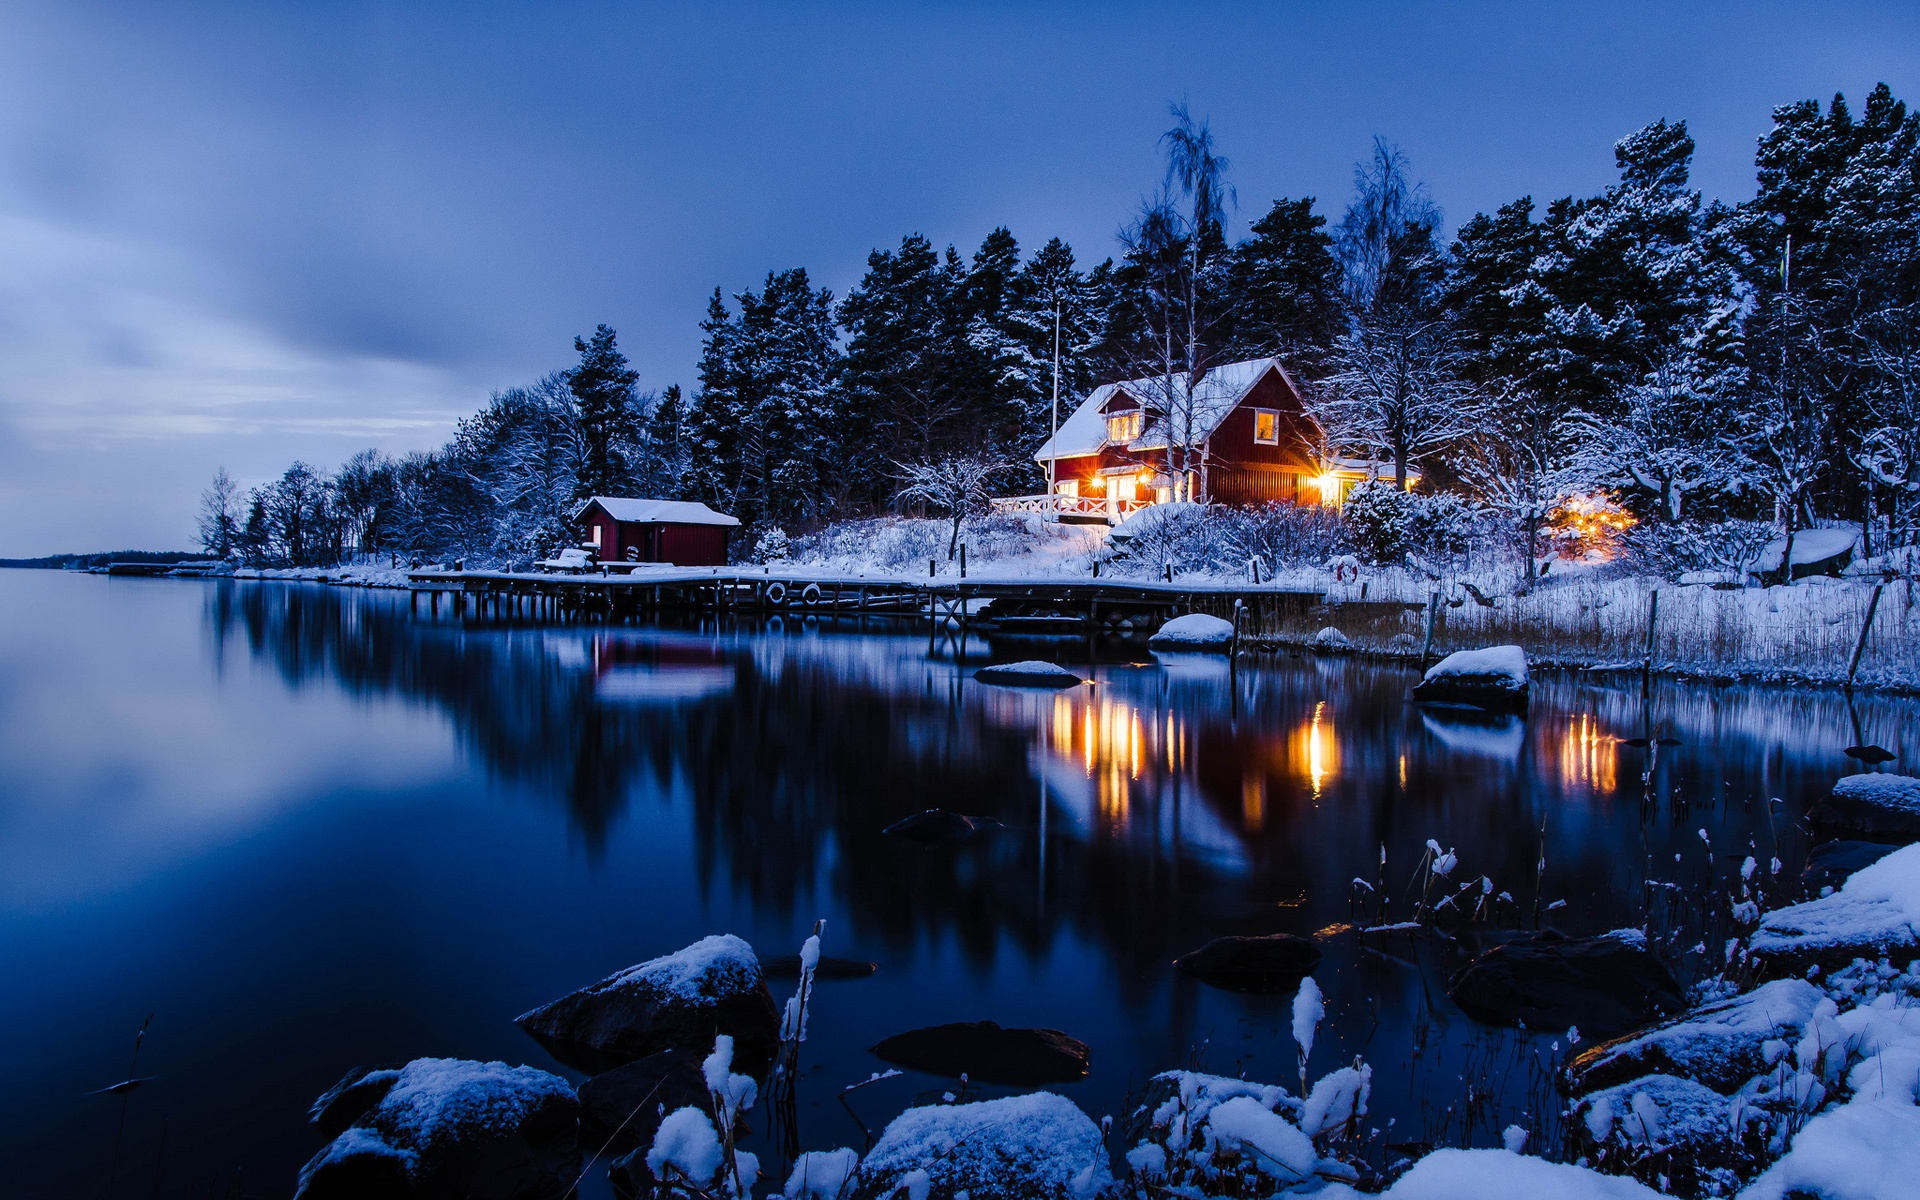 sweden landscape wallpaper